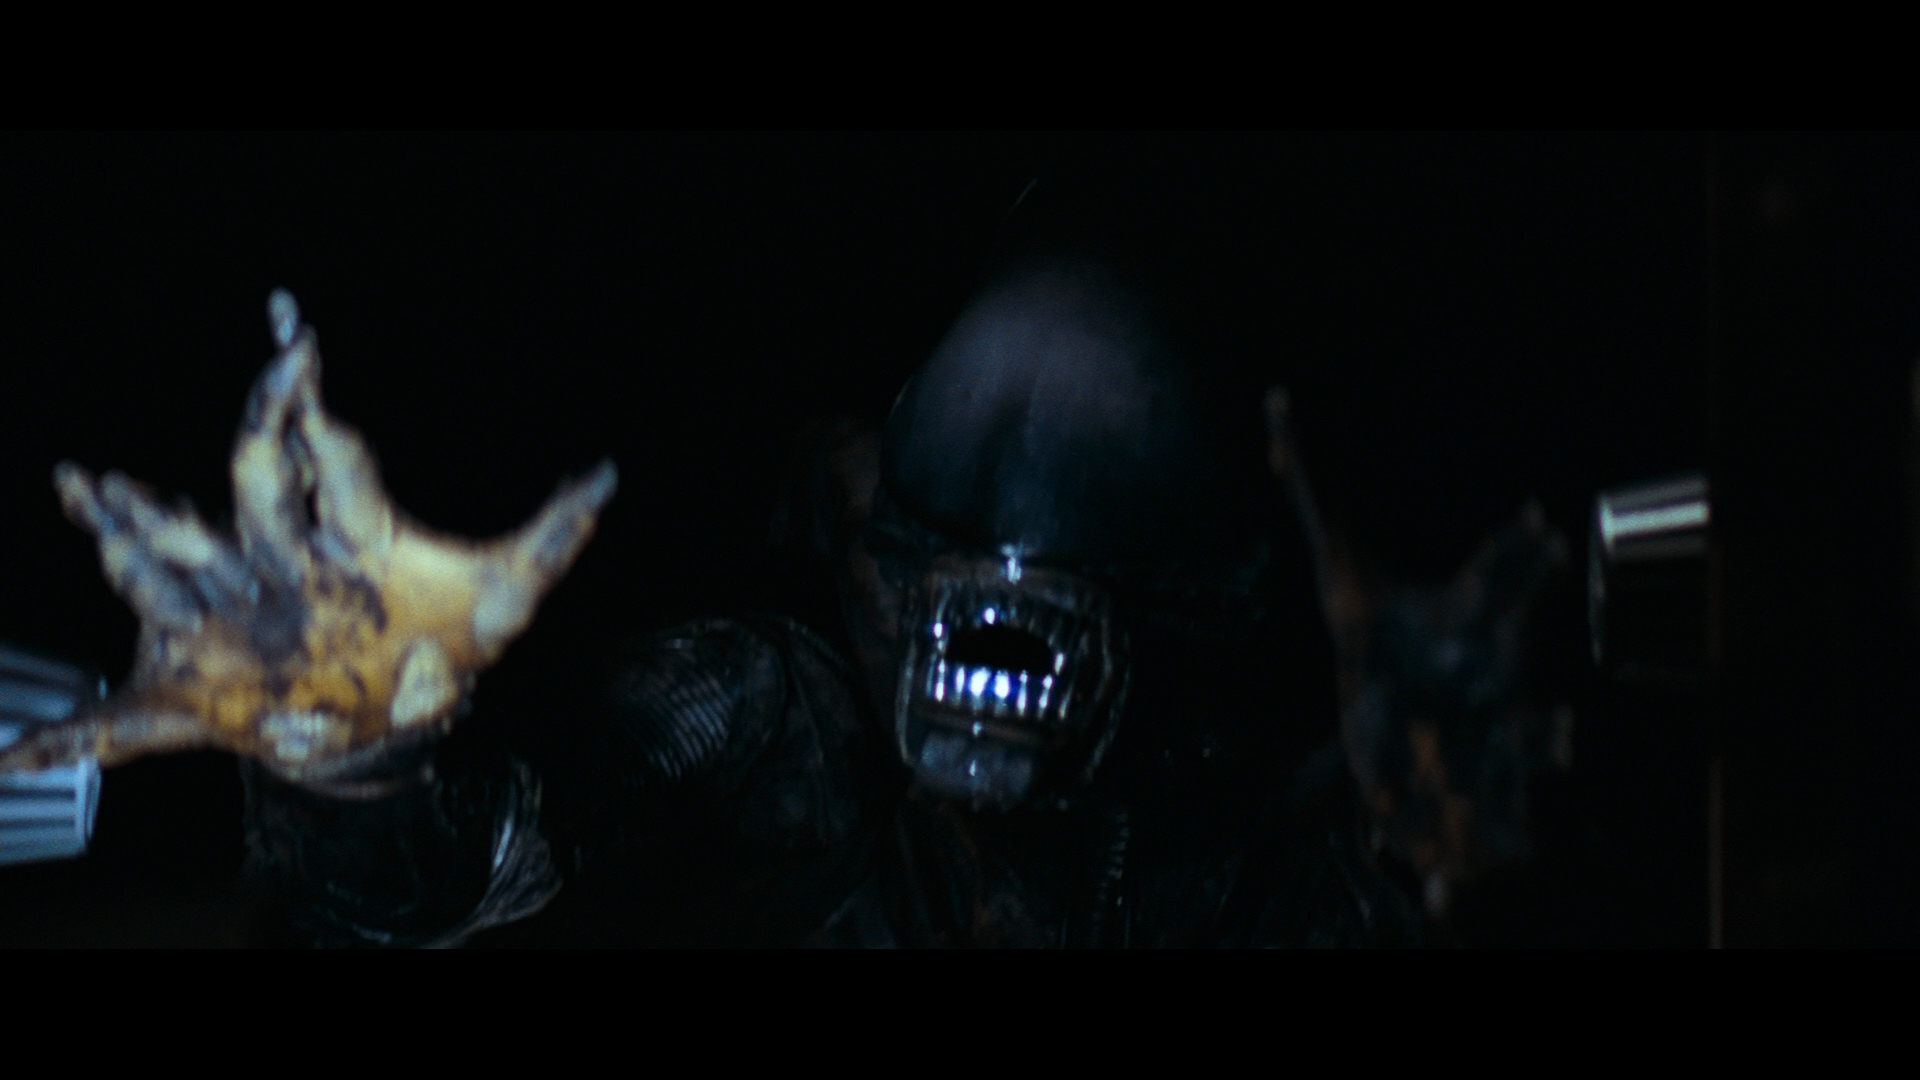 ALIEN (1979) - H.R. Giger-designed Special Effects Mechanical Alien Head - Image 32 of 34